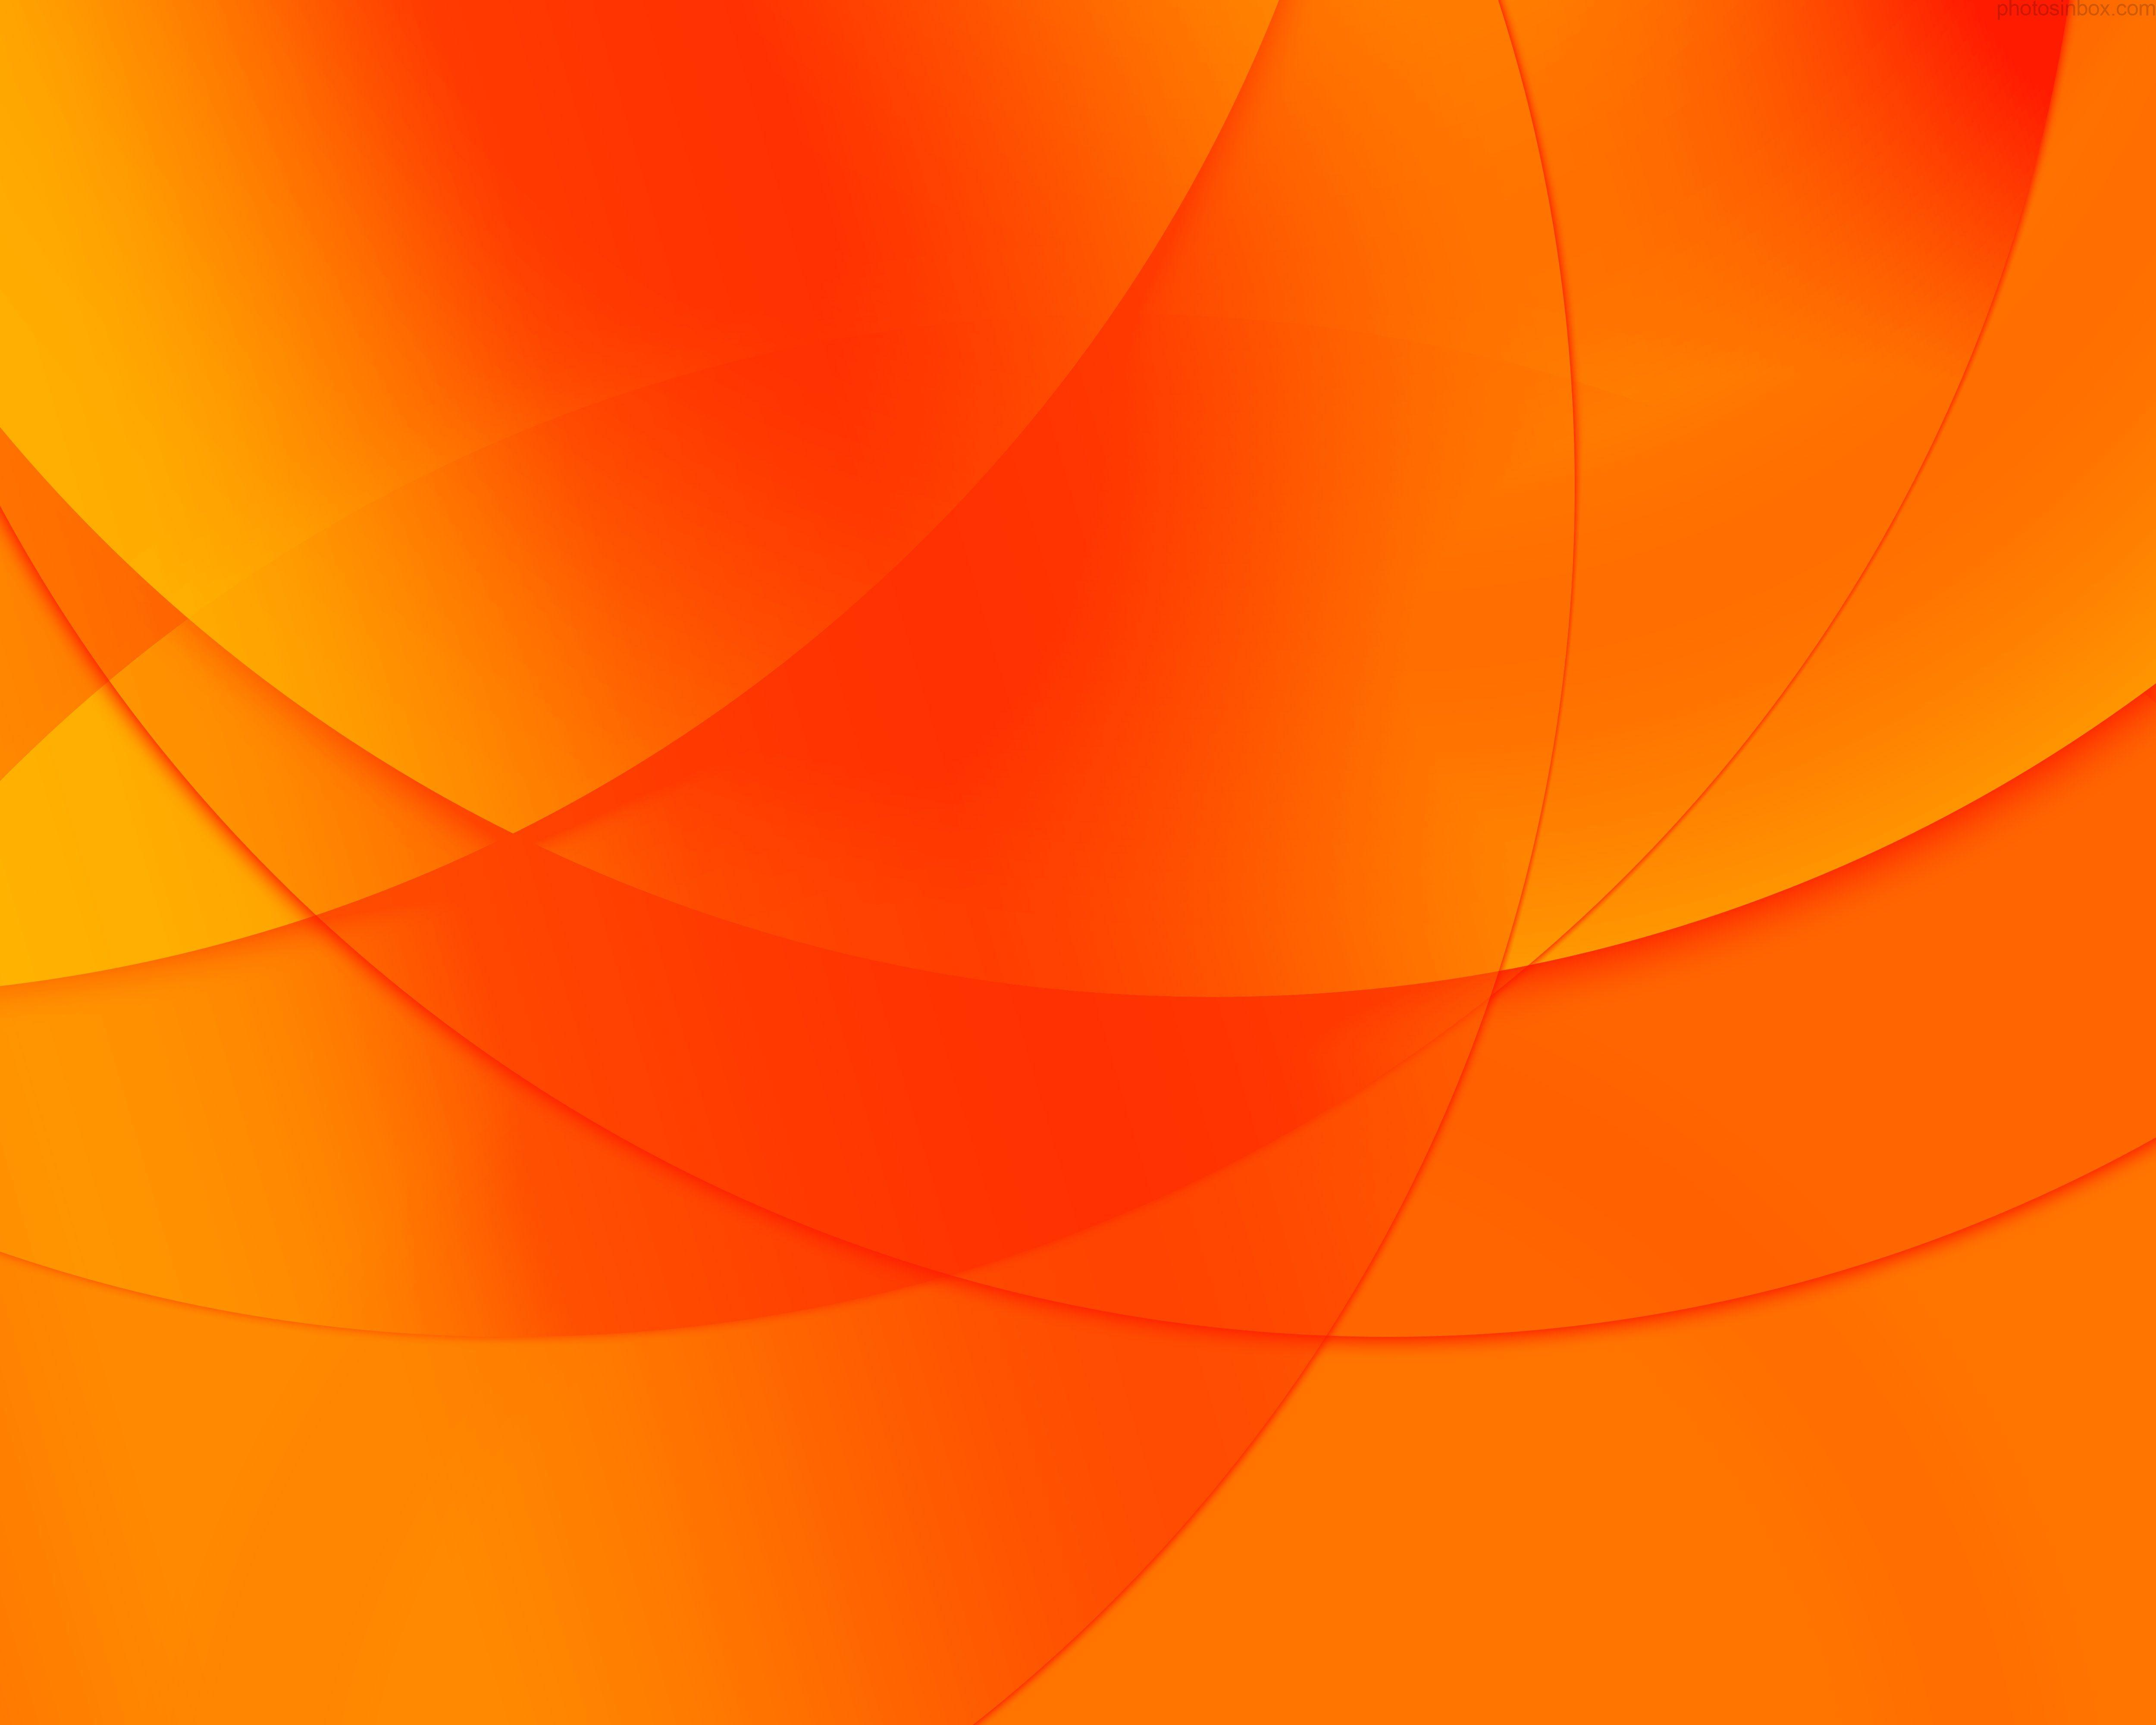 Cool Orange Backgrounds Wallpaper Cave HD Wallpapers Download Free Images Wallpaper [1000image.com]